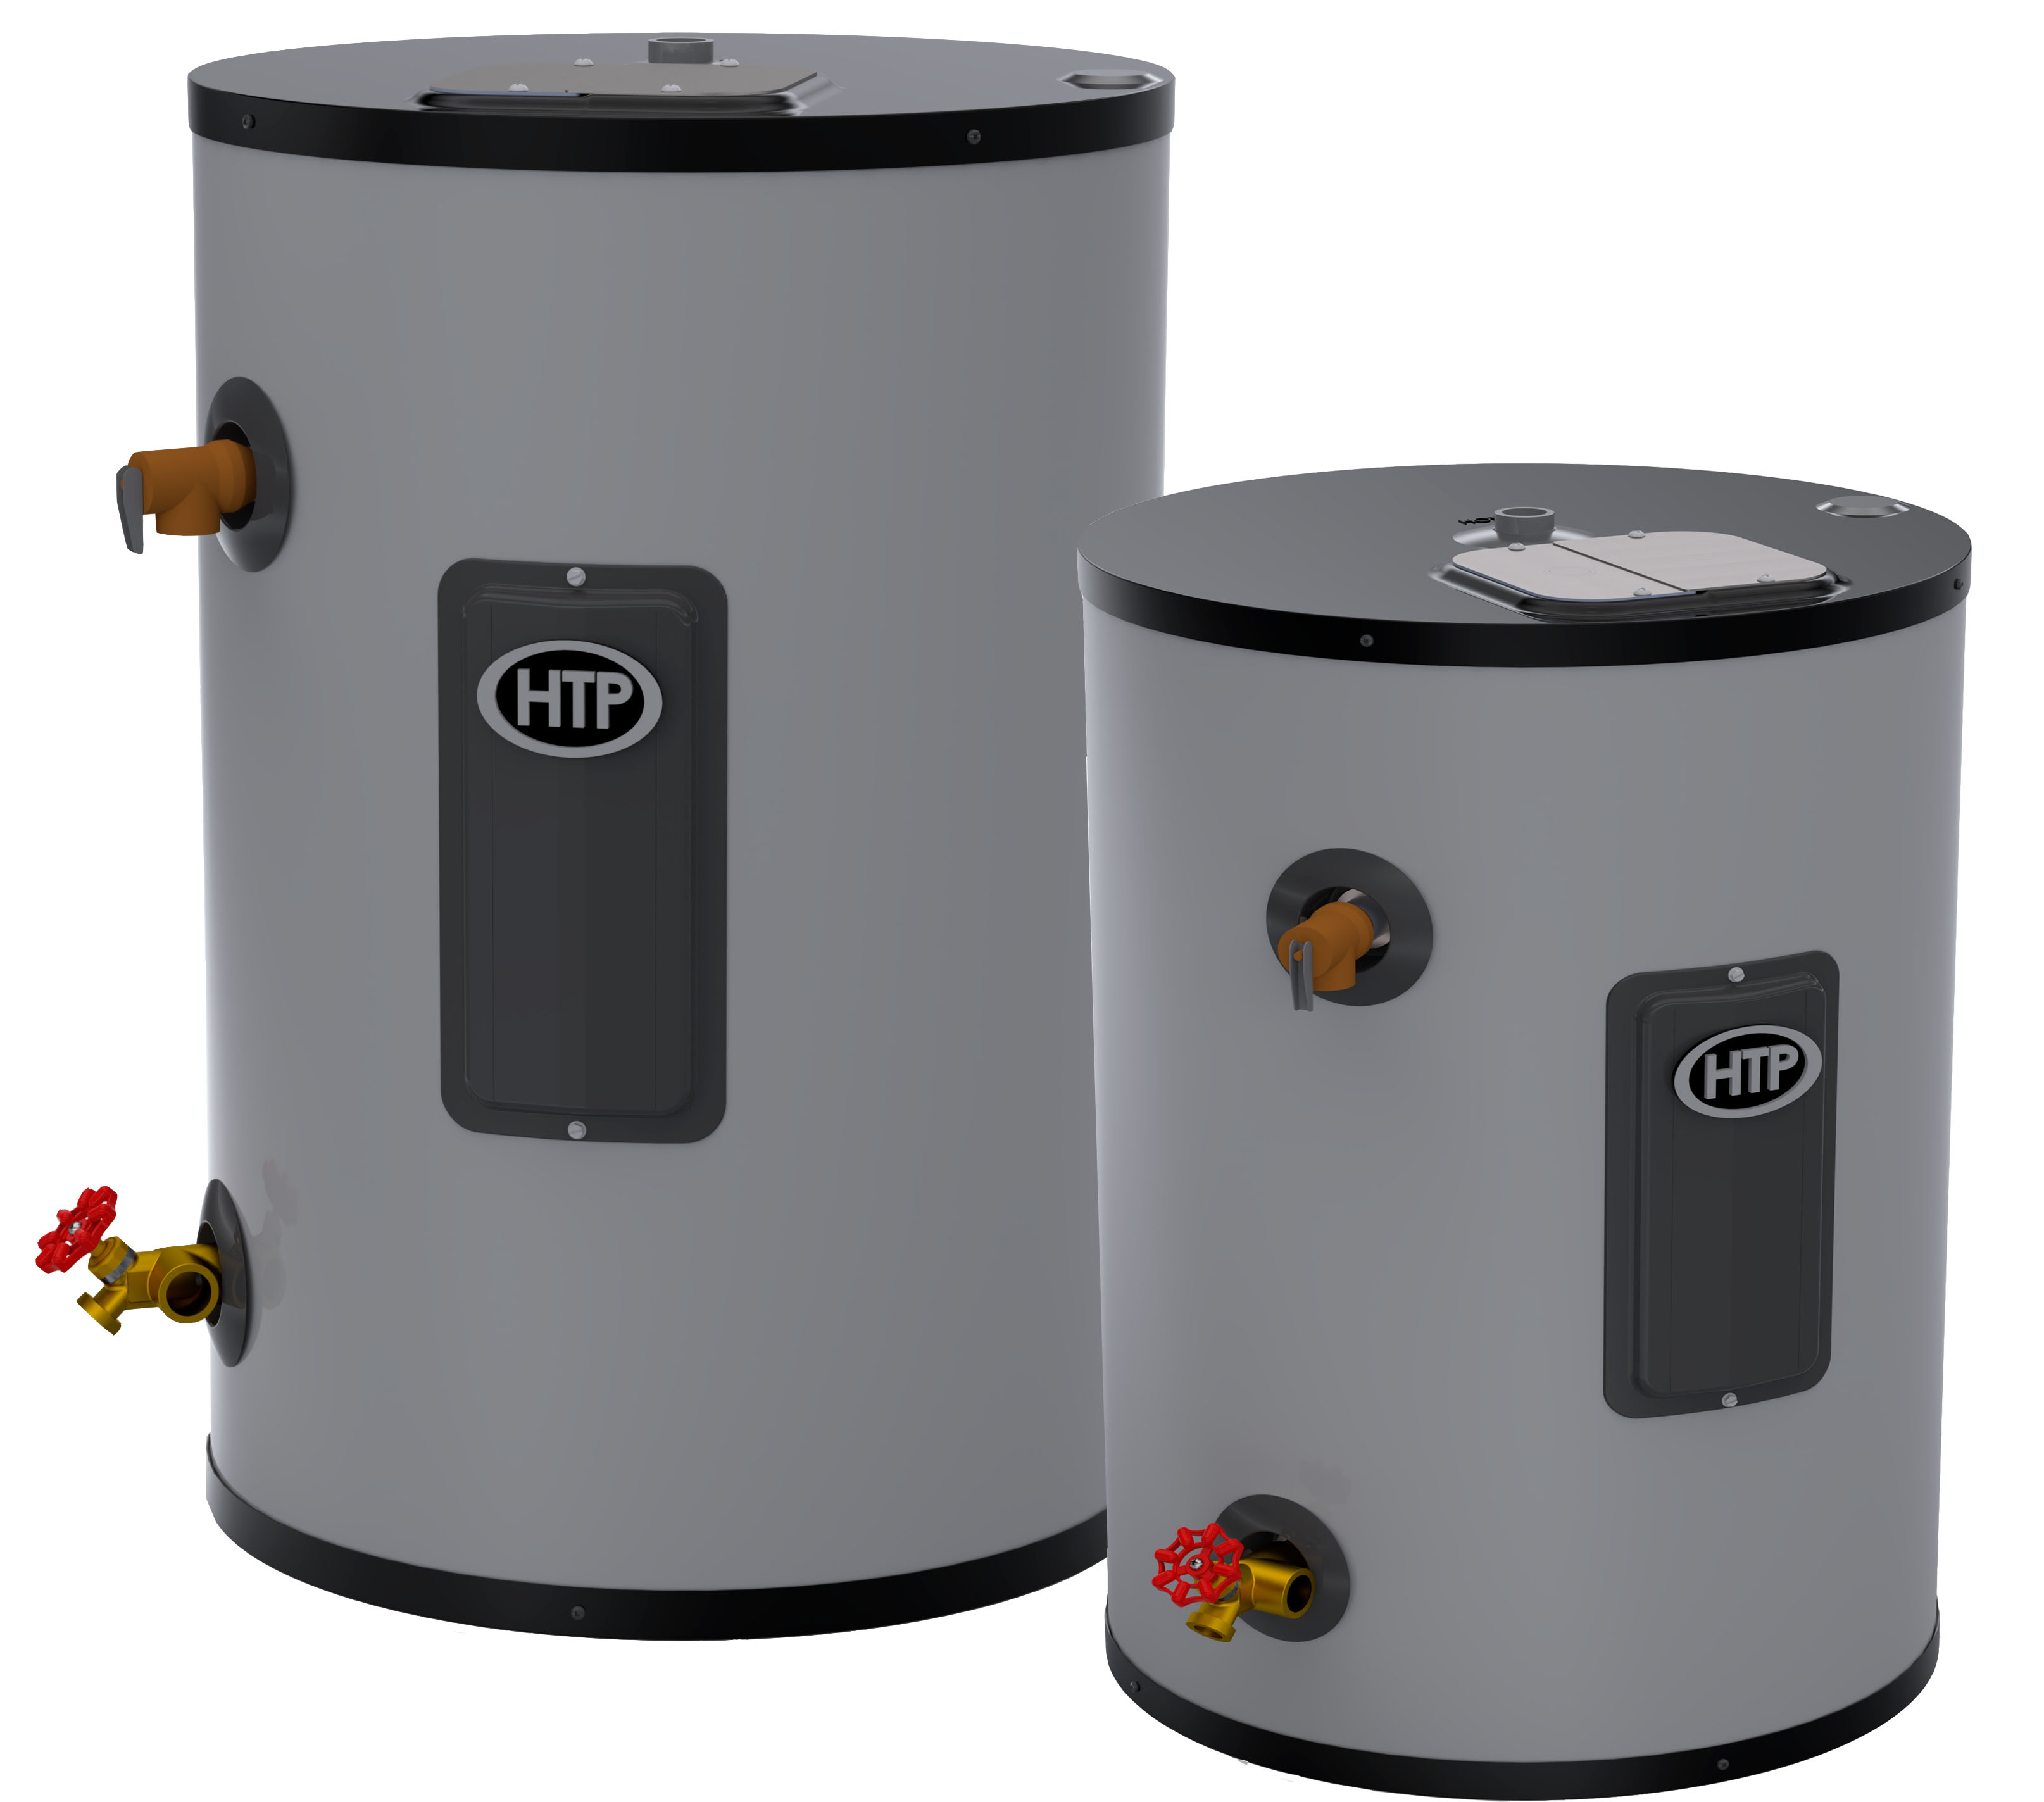 The Everlast Residential Point of Use Electric Water Heater